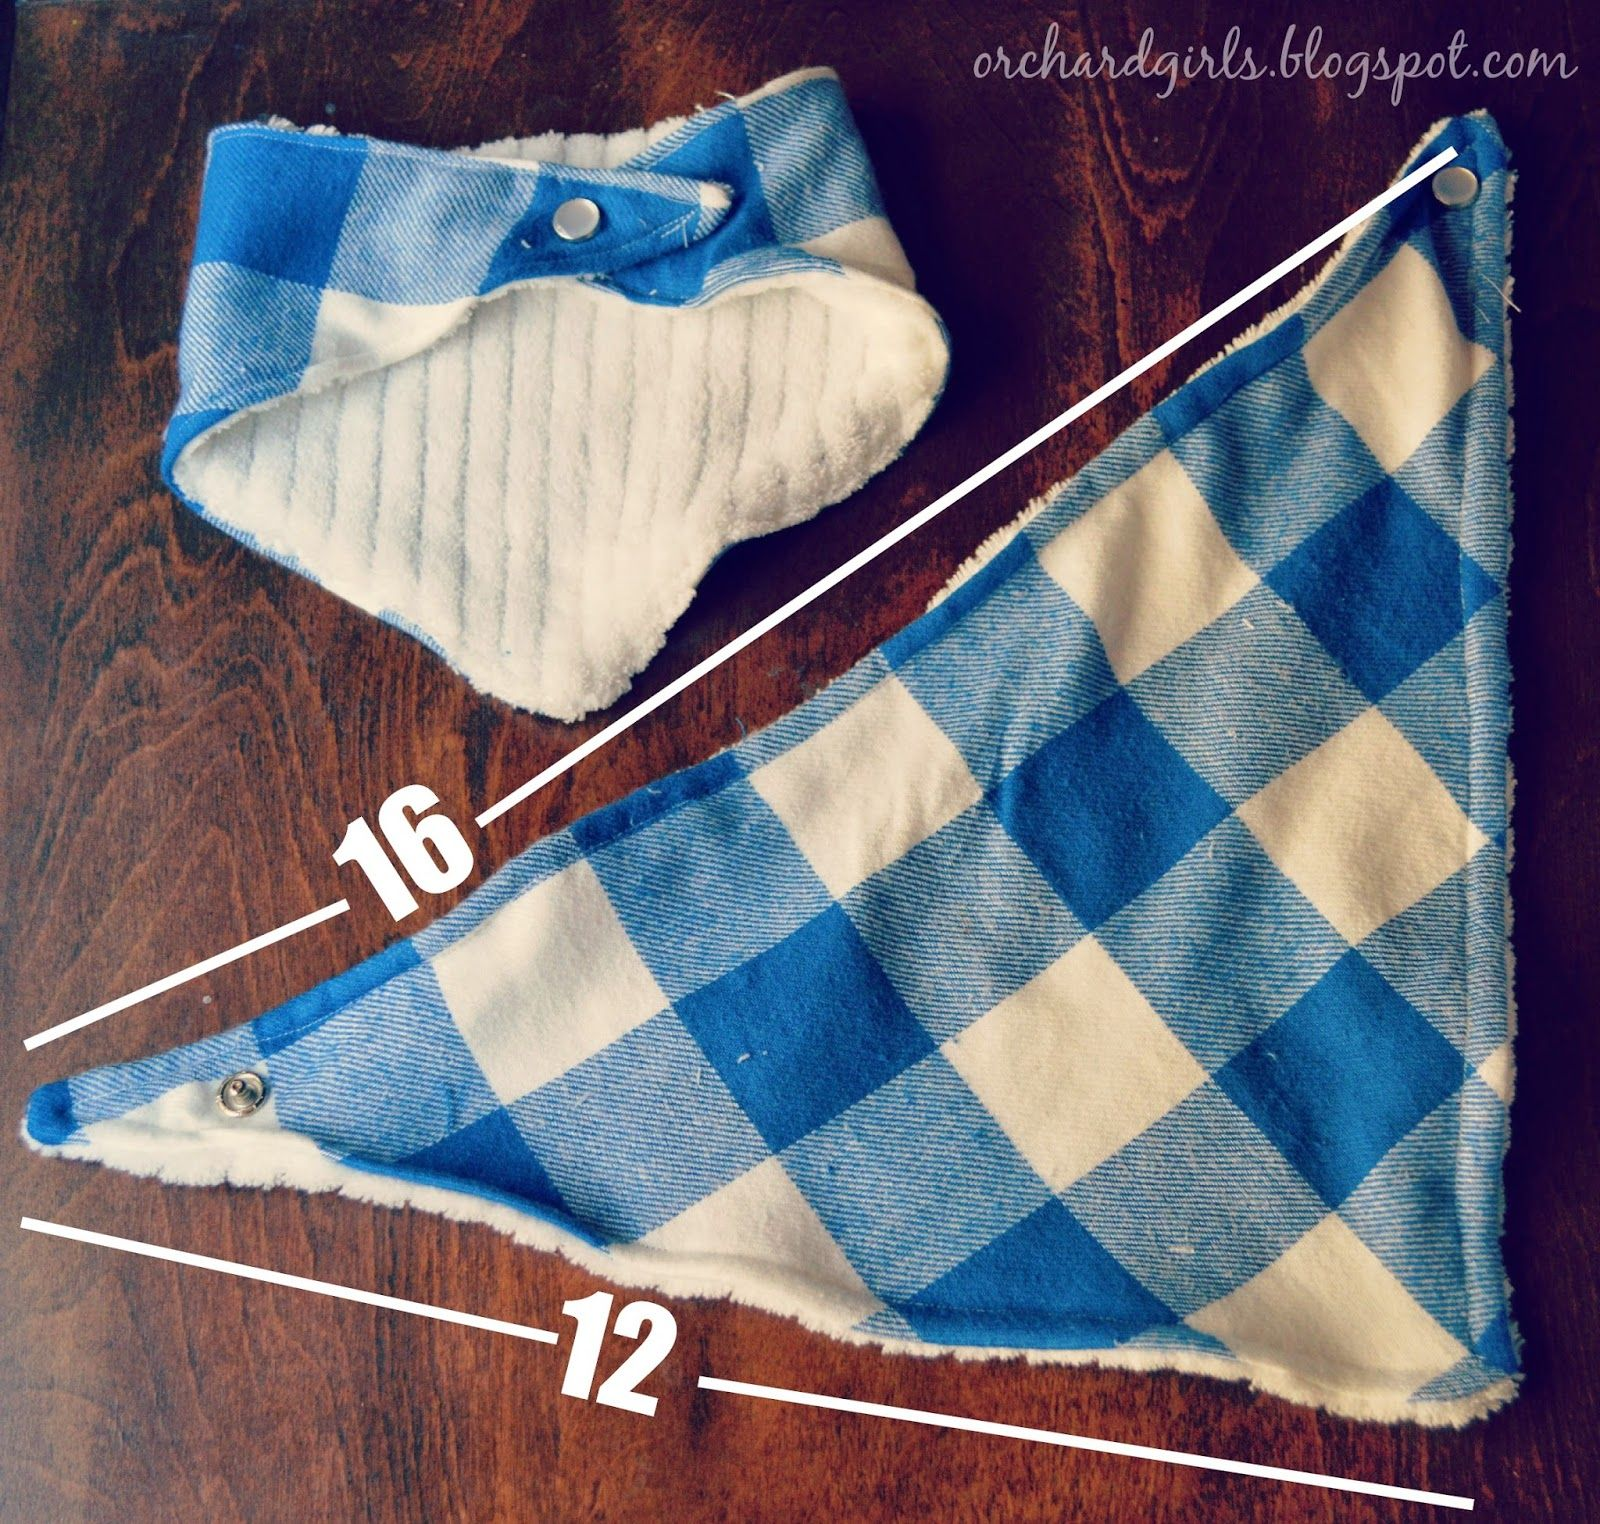 Orchard girls diy bandana drool bib tutorial two different styles orchard girls diy bandana drool bib tutorial two different styles baditri Images